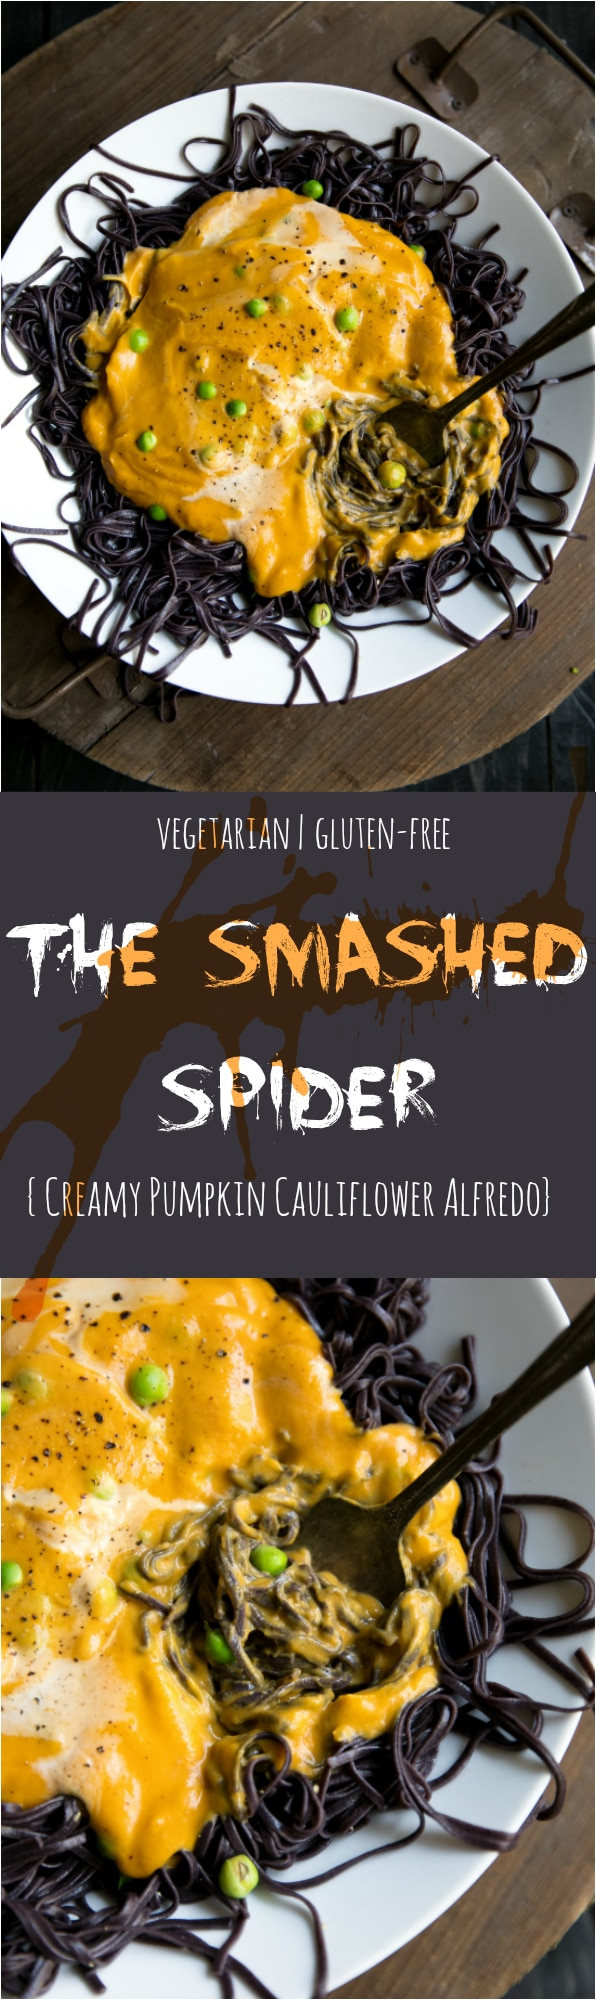 Both kids and grown ups will go bonkers for this FUN (and sneakily healthy) version of Pumpkin Cauliflower Alfredo. Appropriately named The Smashed Spider, this pasta is all about healthy veggies and power packed super foods. #halloween #healthy #familyrecipies #kidfood #kidapproved